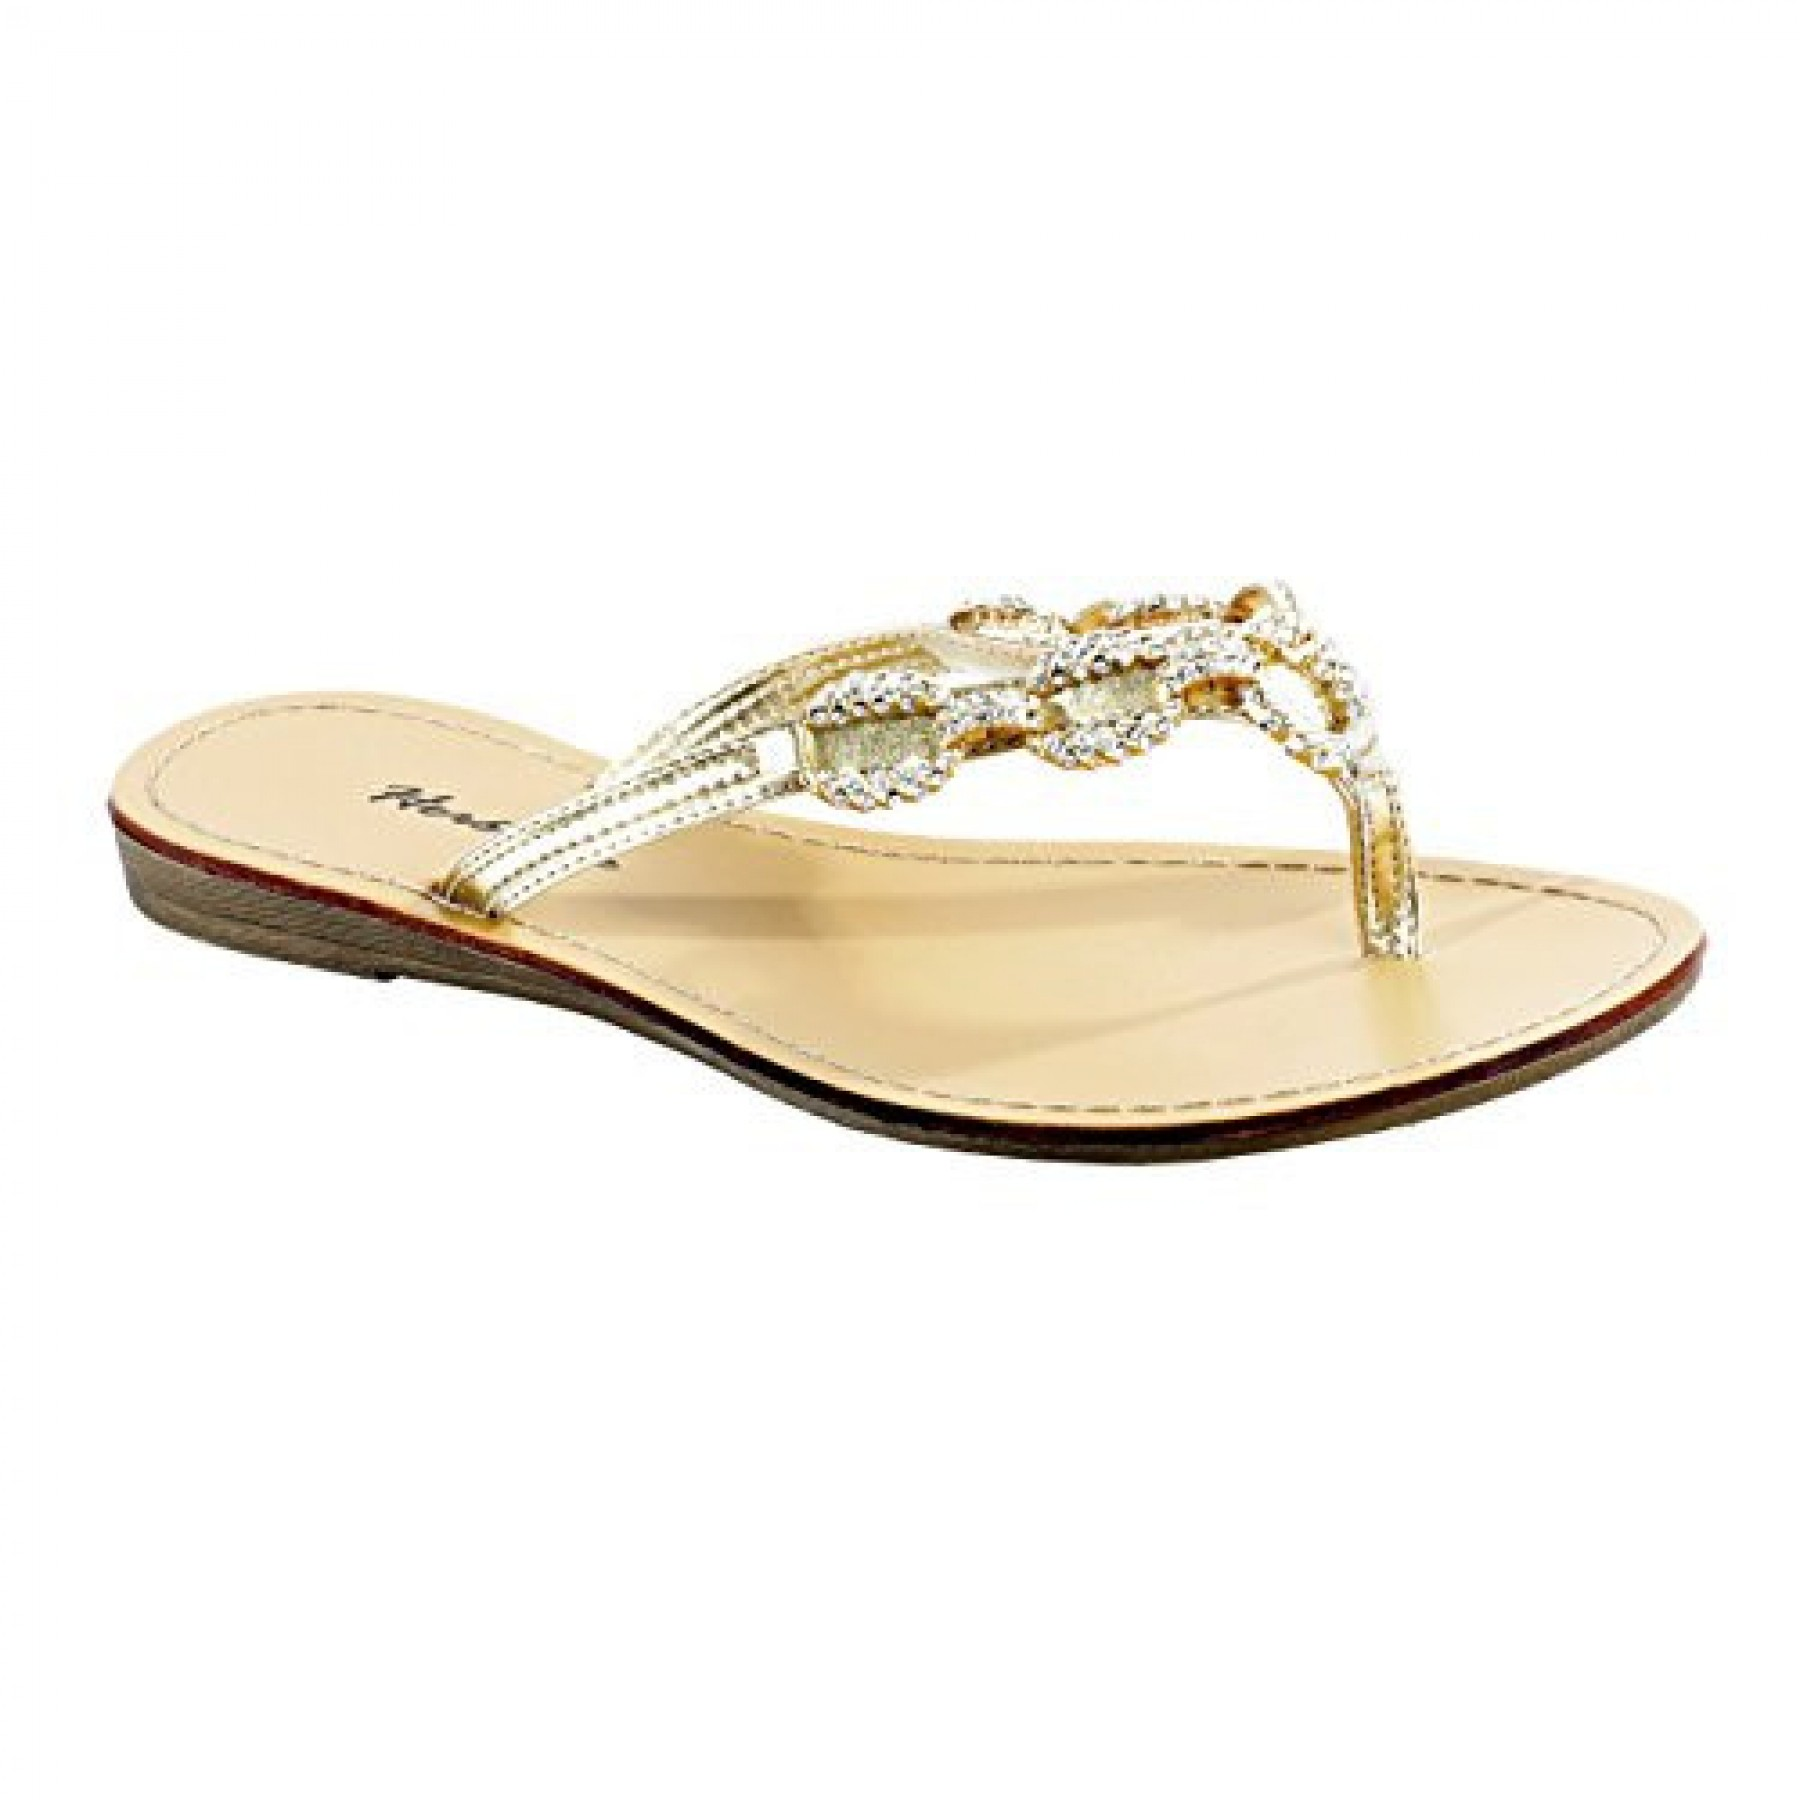 Women's Gold Janiesa Manmade Flat Thong Sandal with Glowing Jeweled Chain